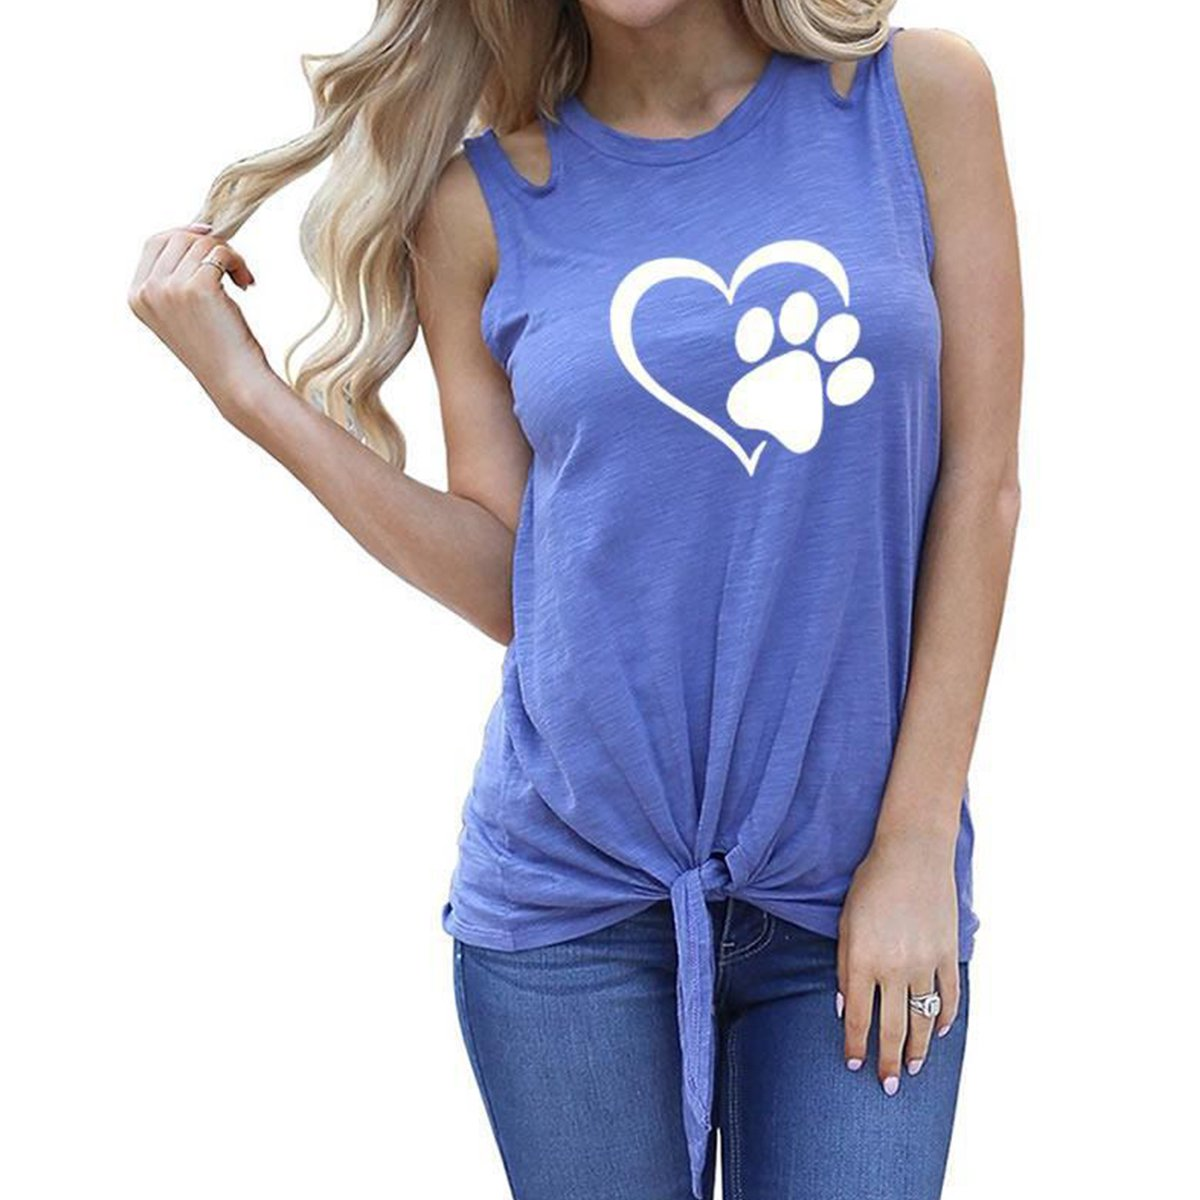 Women Paw Print Cut Out Shoulder Tank Top Tie Front Sleeveless T-Shirts Vest (Color : Blue, Size : S) Jahurto